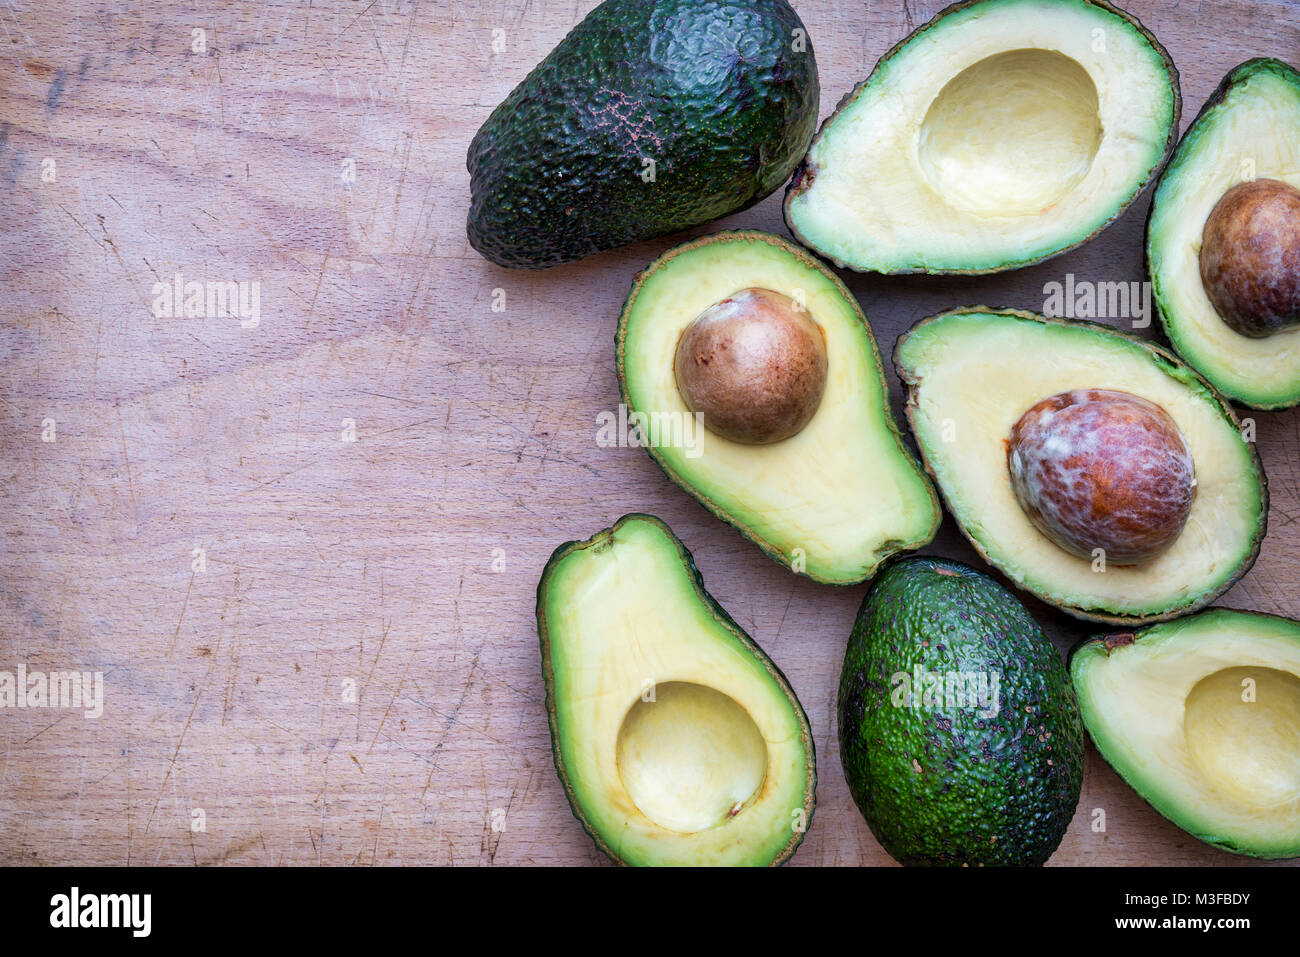 Persea americana. Avocado pattern on a wood background - Stock Image